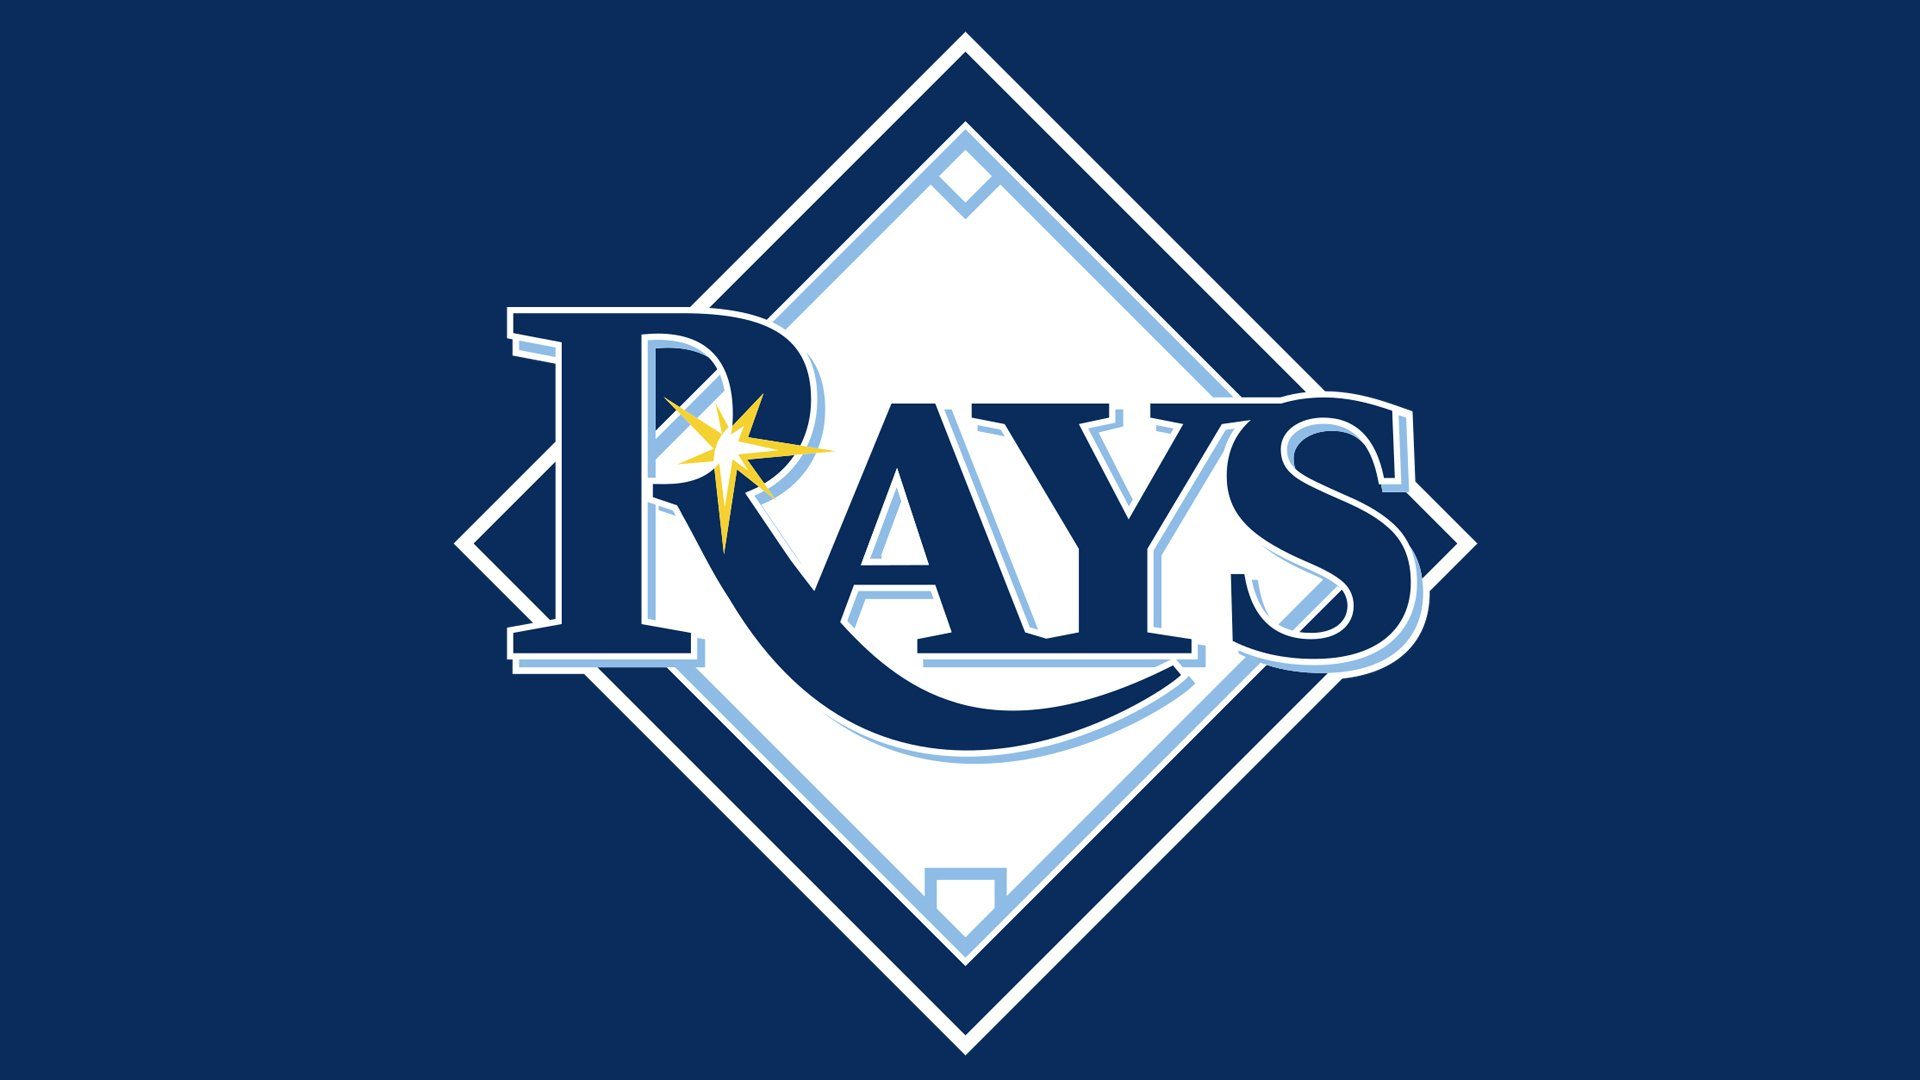 rays logo coloring pages - photo#40